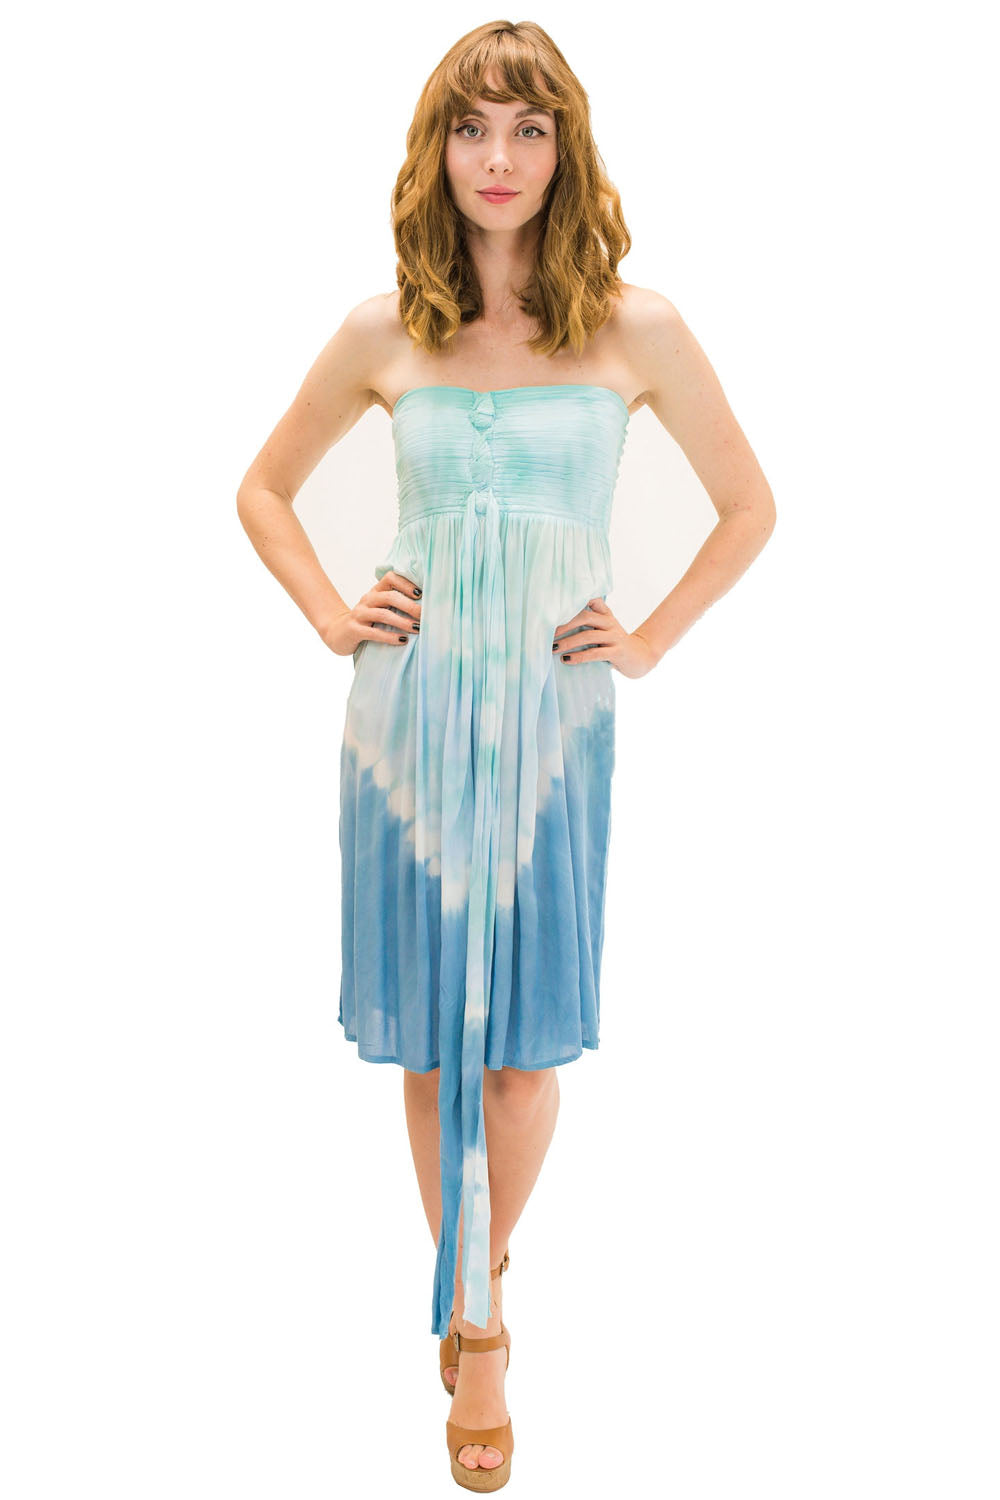 Lani Short Dress in Abstract Blue